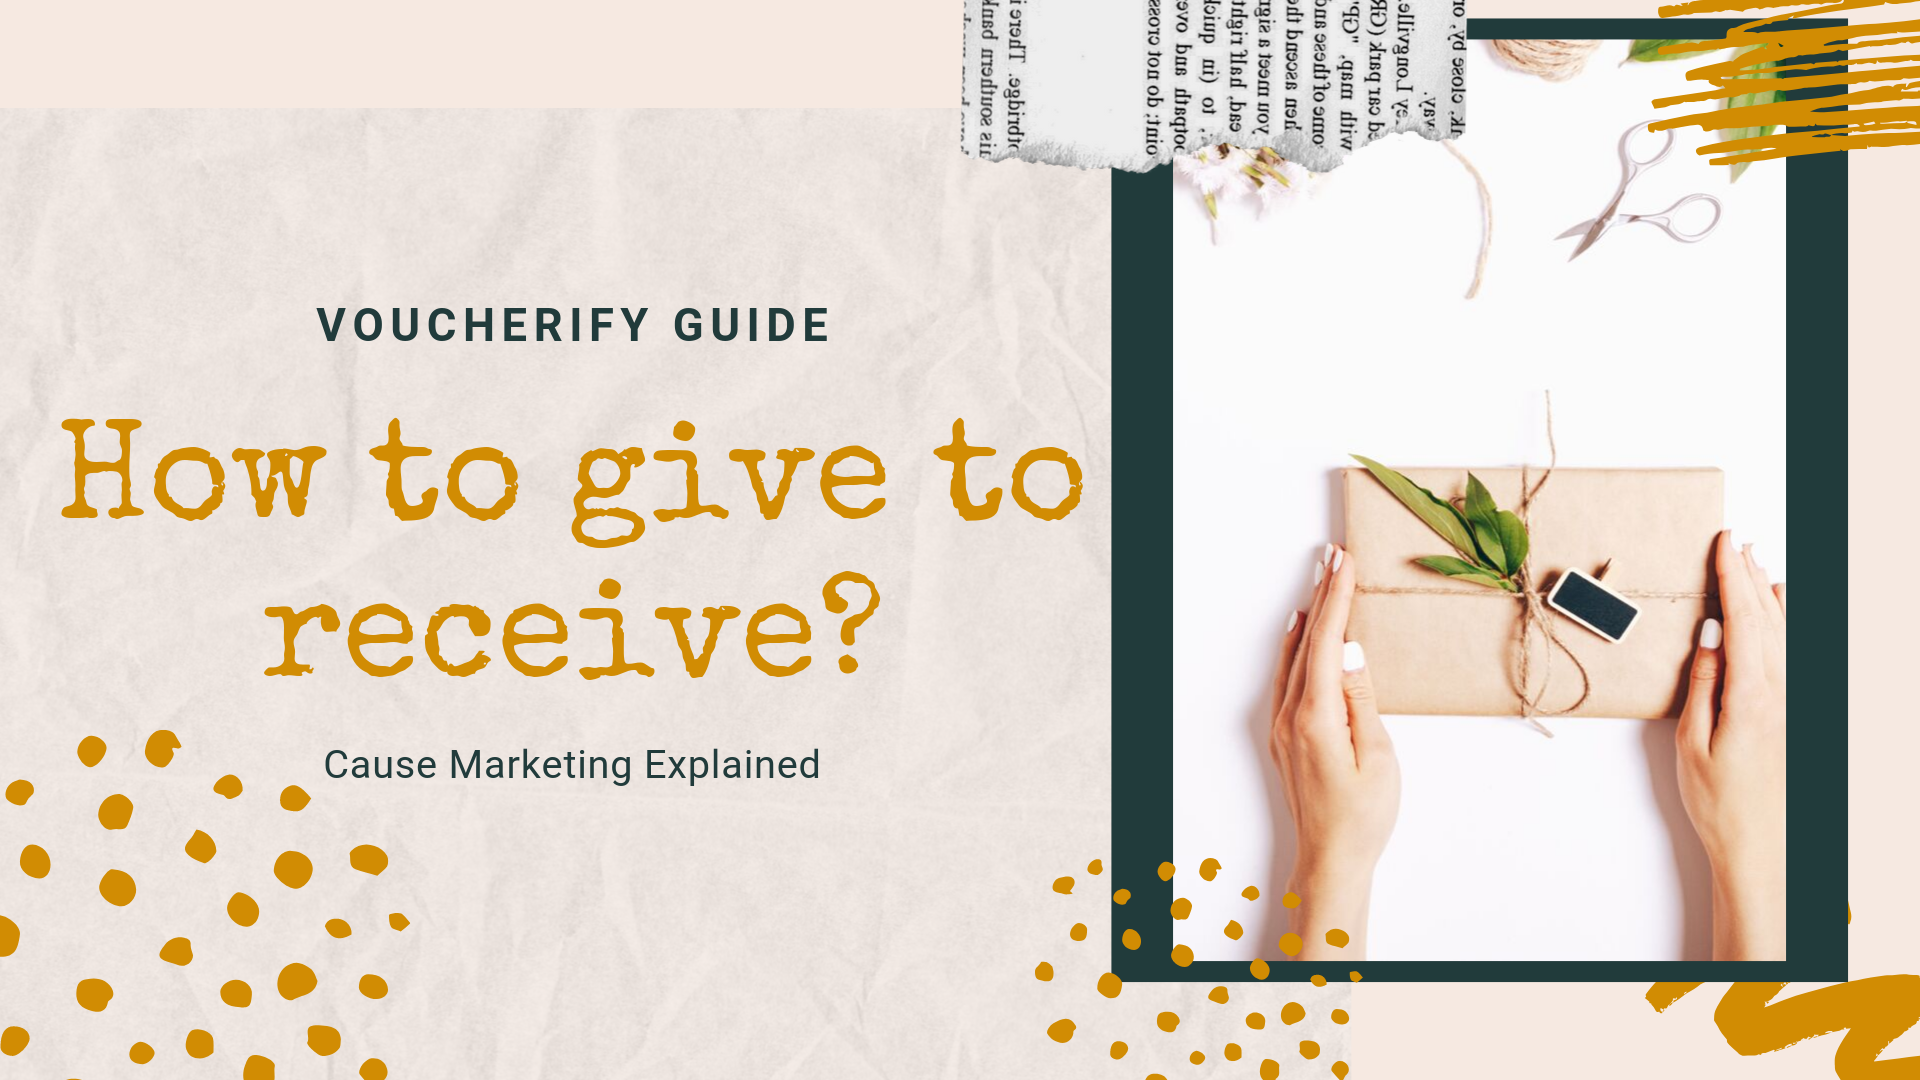 How to give to receive - a guide on cause related marketing